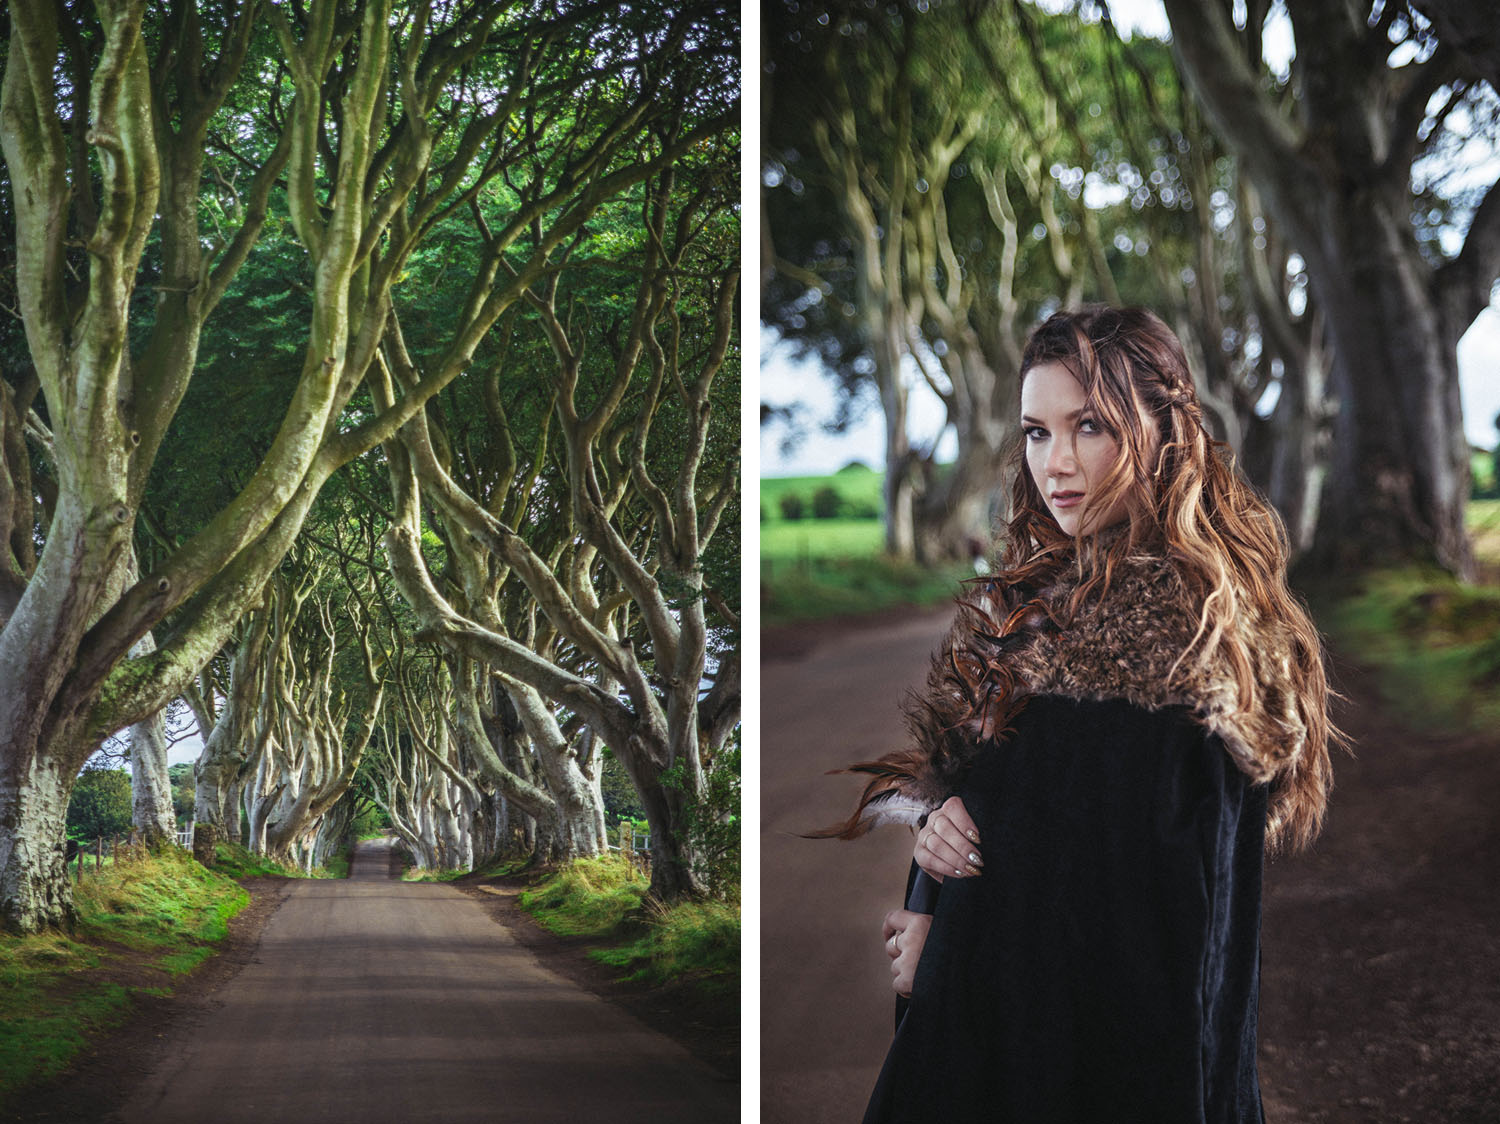 The Dark Hedges in Northern Ireland - Game of Thrones Filming Location The Kingsroad + woman with cape